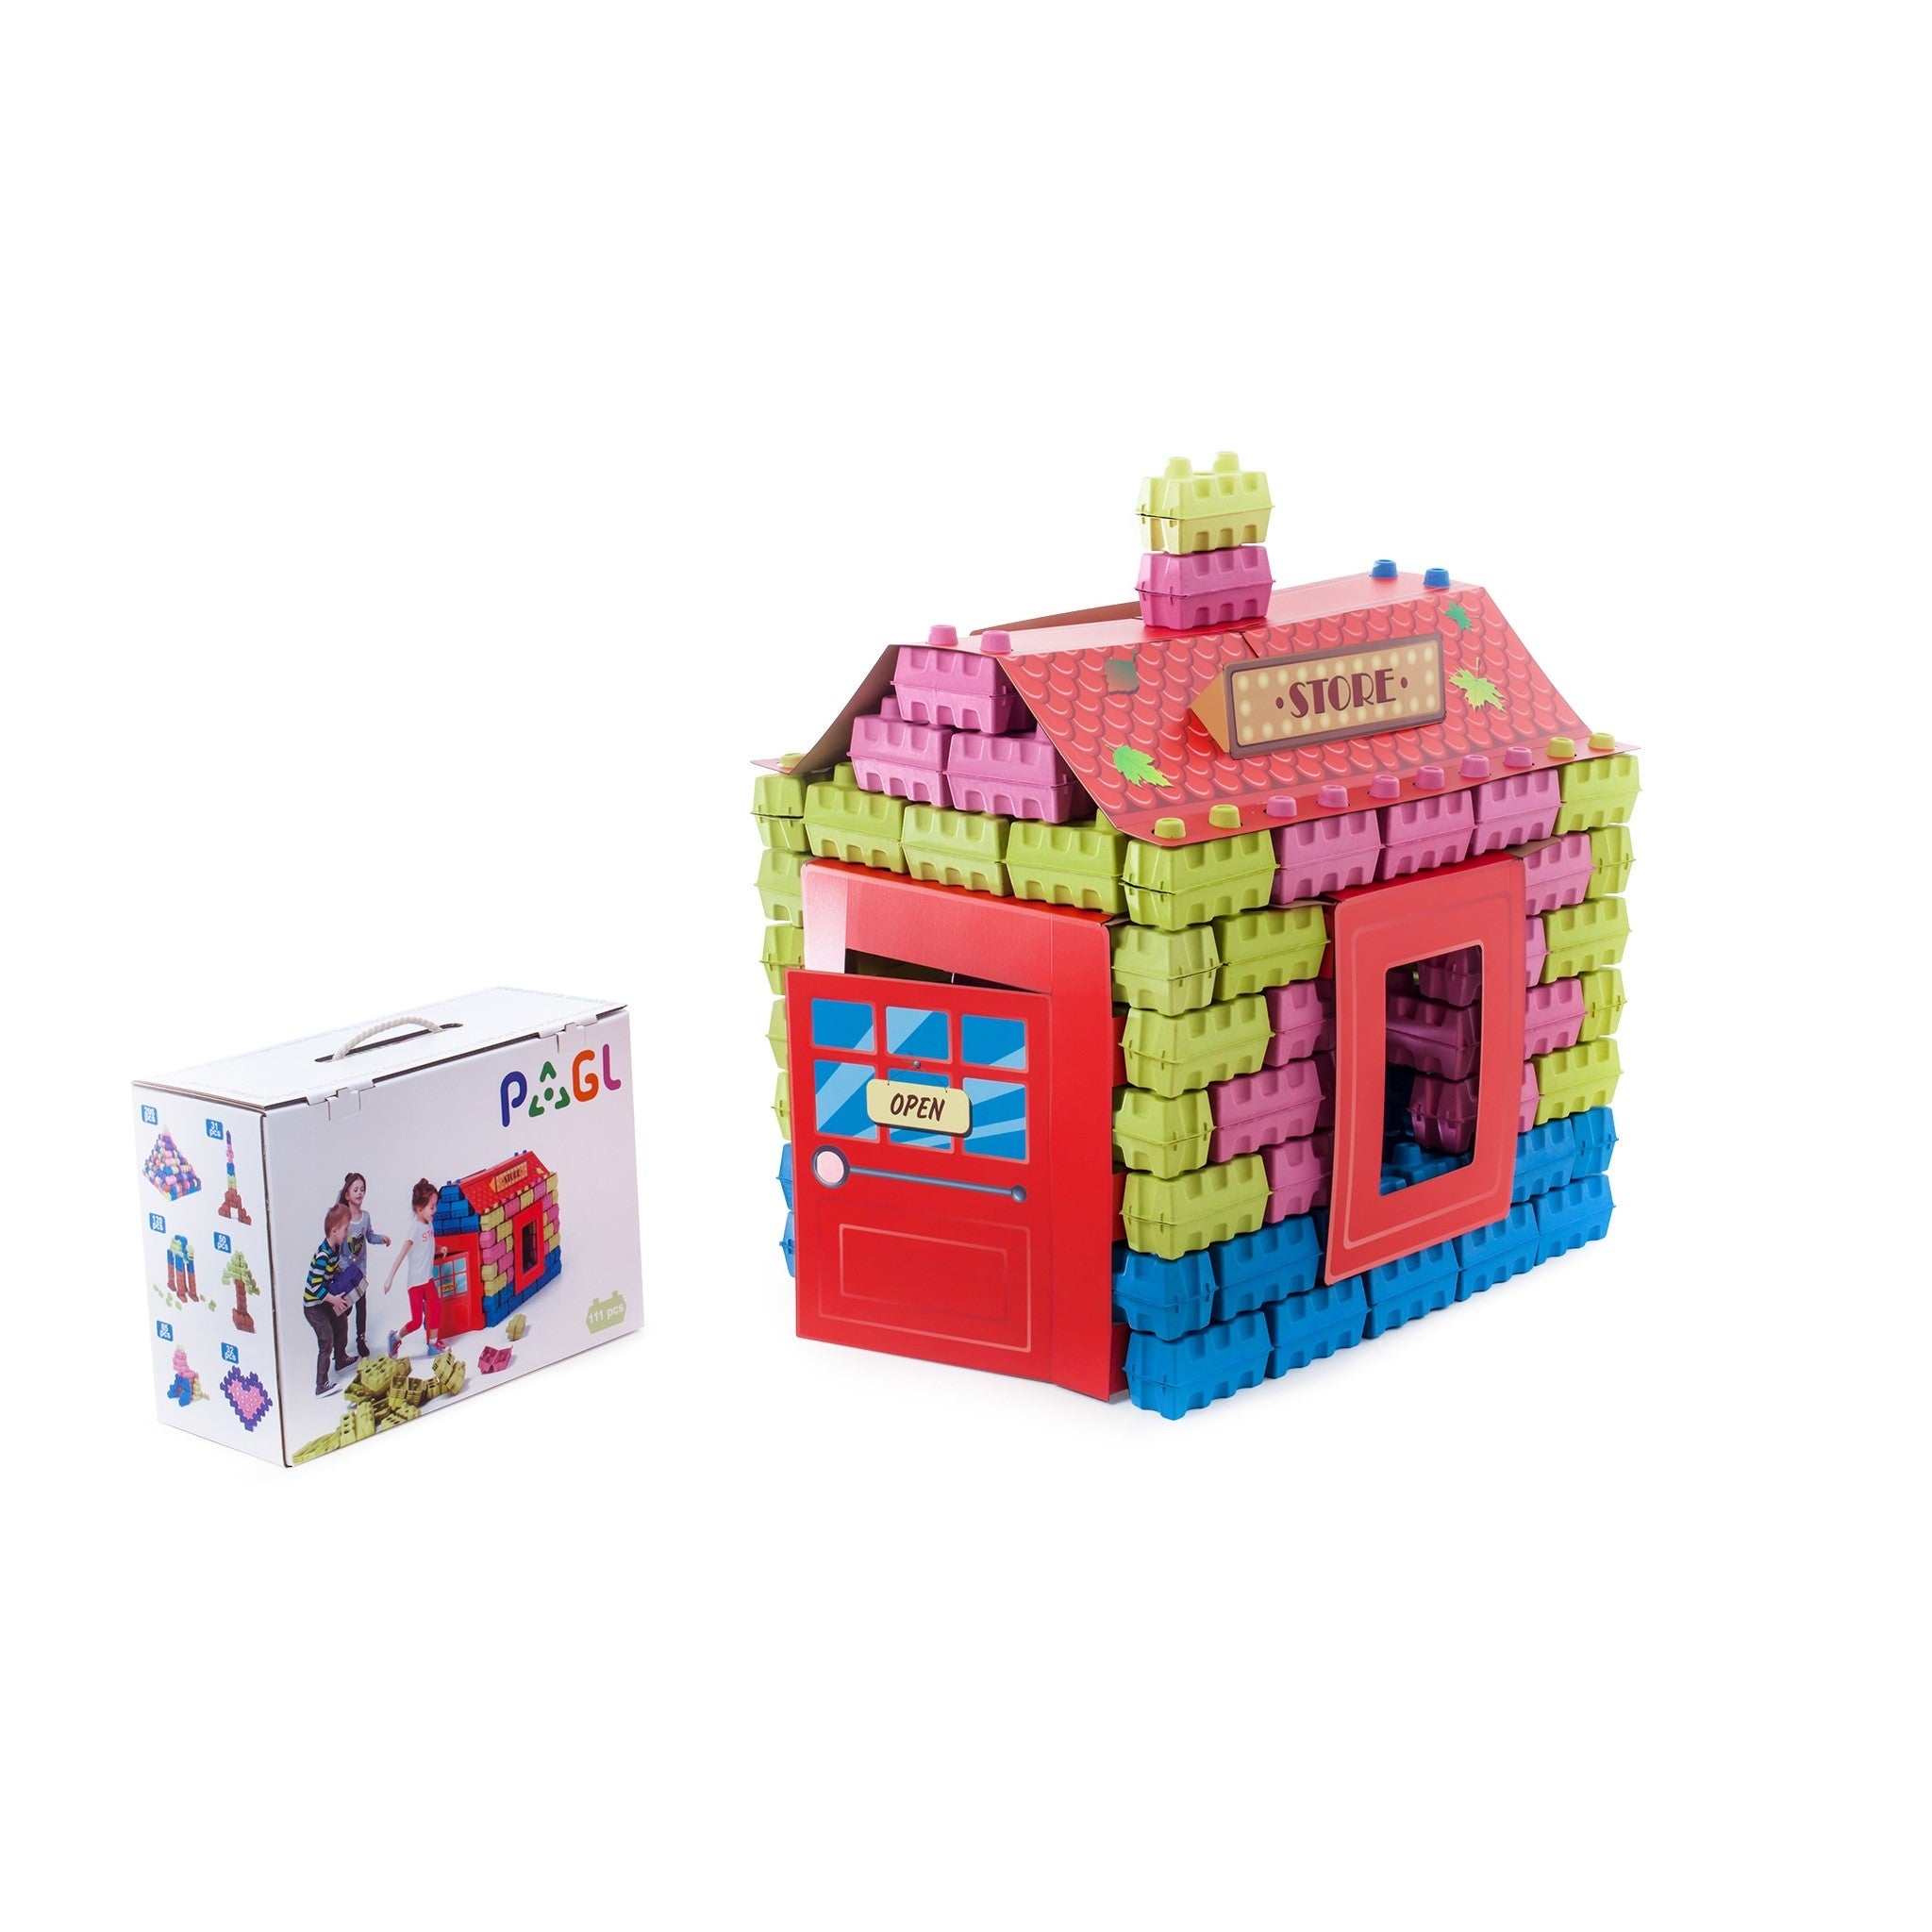 PAGL Store kit include of 111 blocks, one roof, two fixators, two signboards, one window, one door.